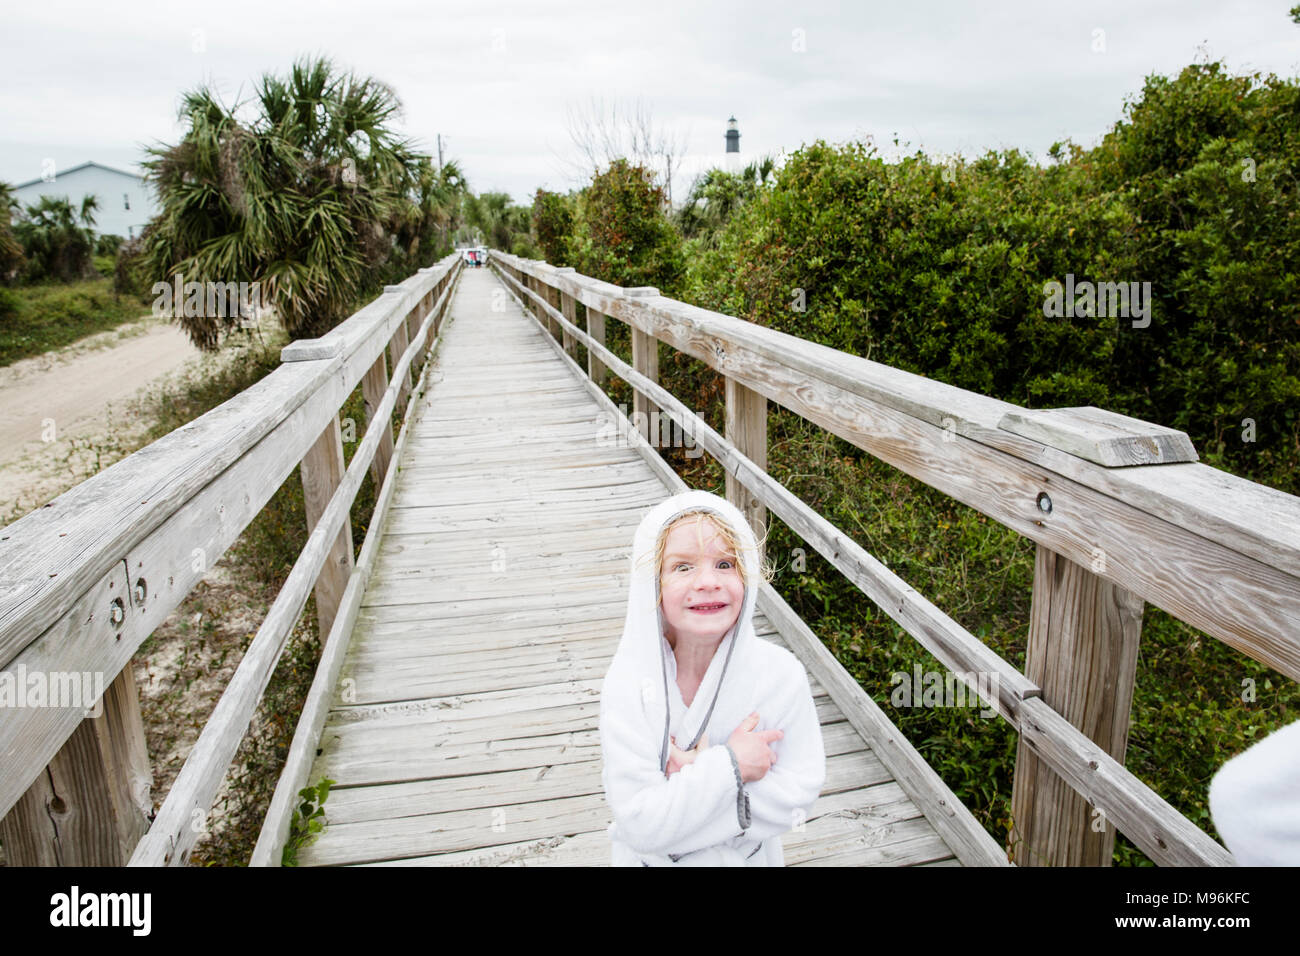 Girl alone smiling at camera on dock/walkway - Stock Image